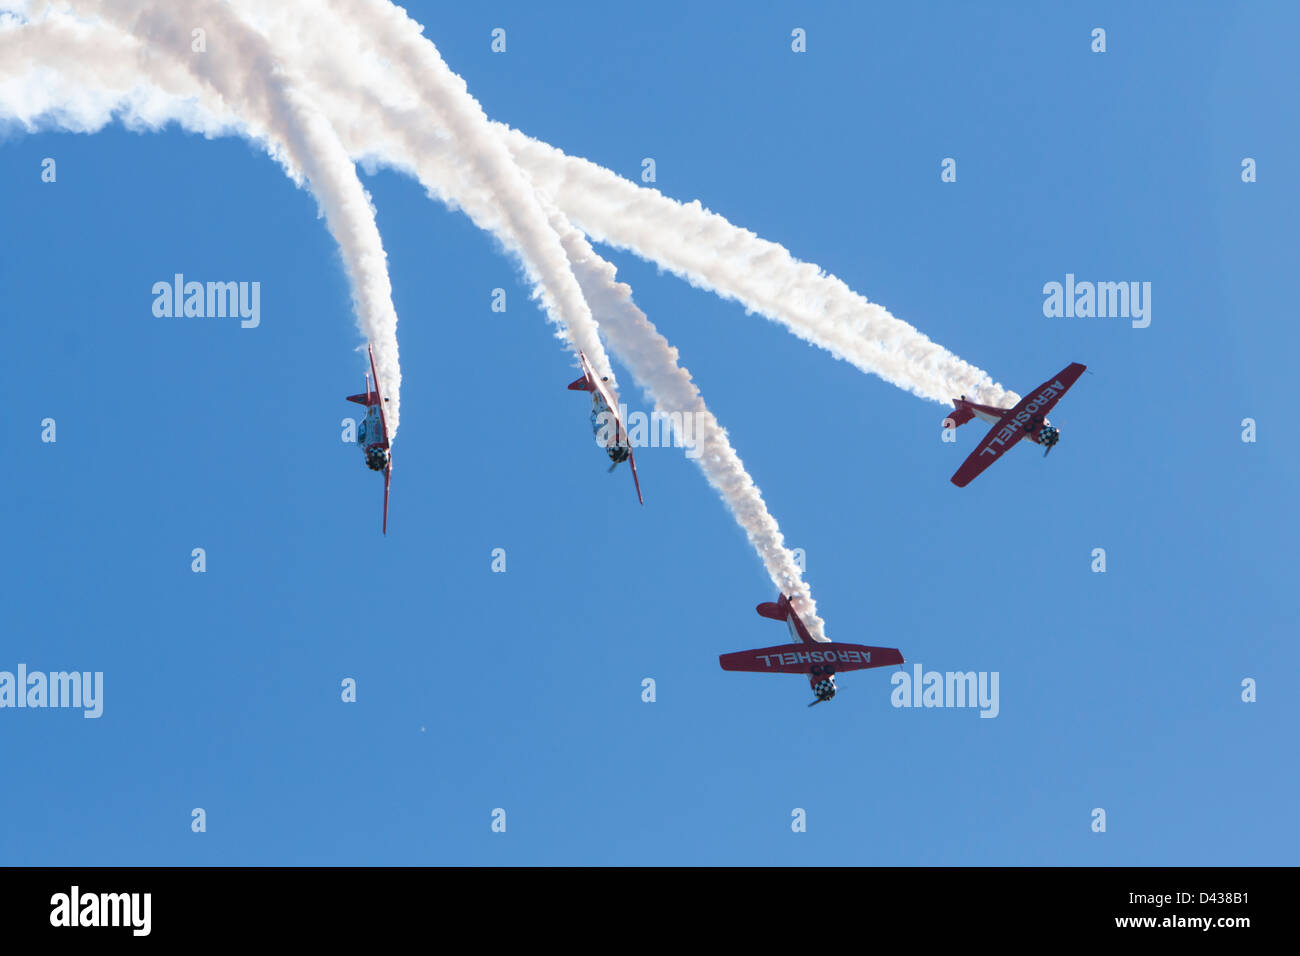 The Aeroshell aerobatic team fly in formation at the Stuart Air Show. - Stock Image